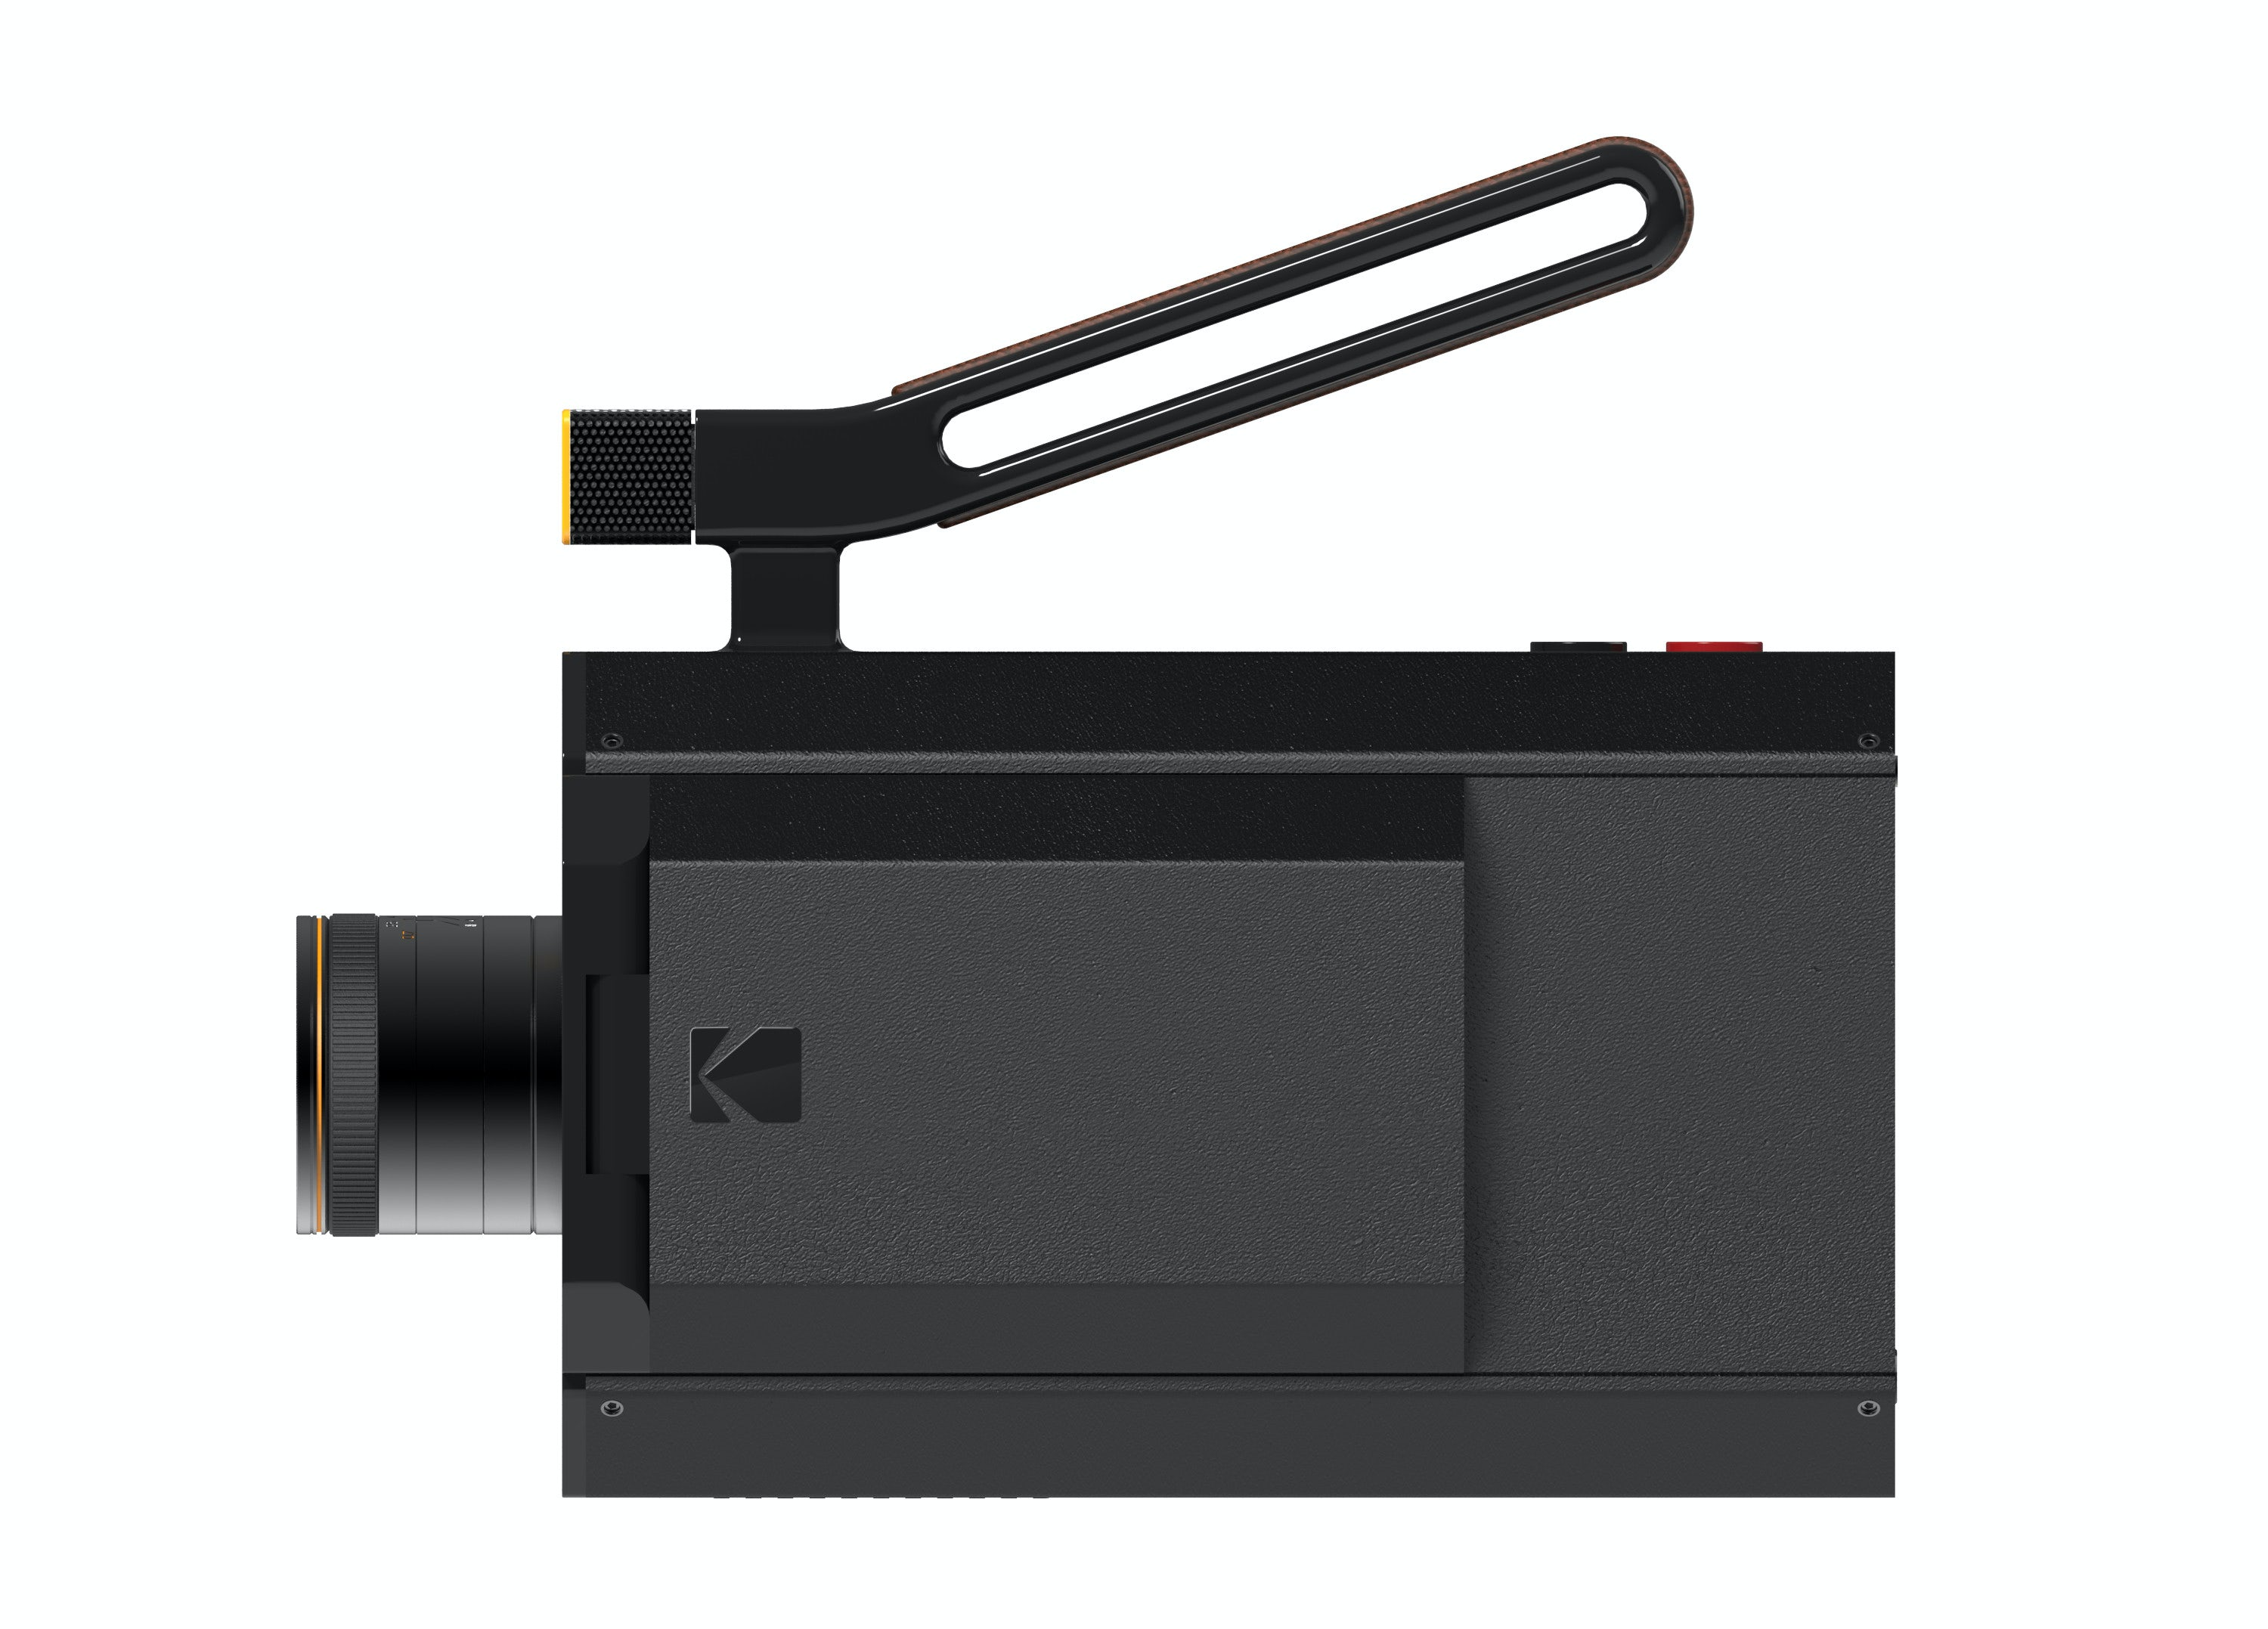 The new Super 8 camera. Kodak worked with Yves Behar to create it